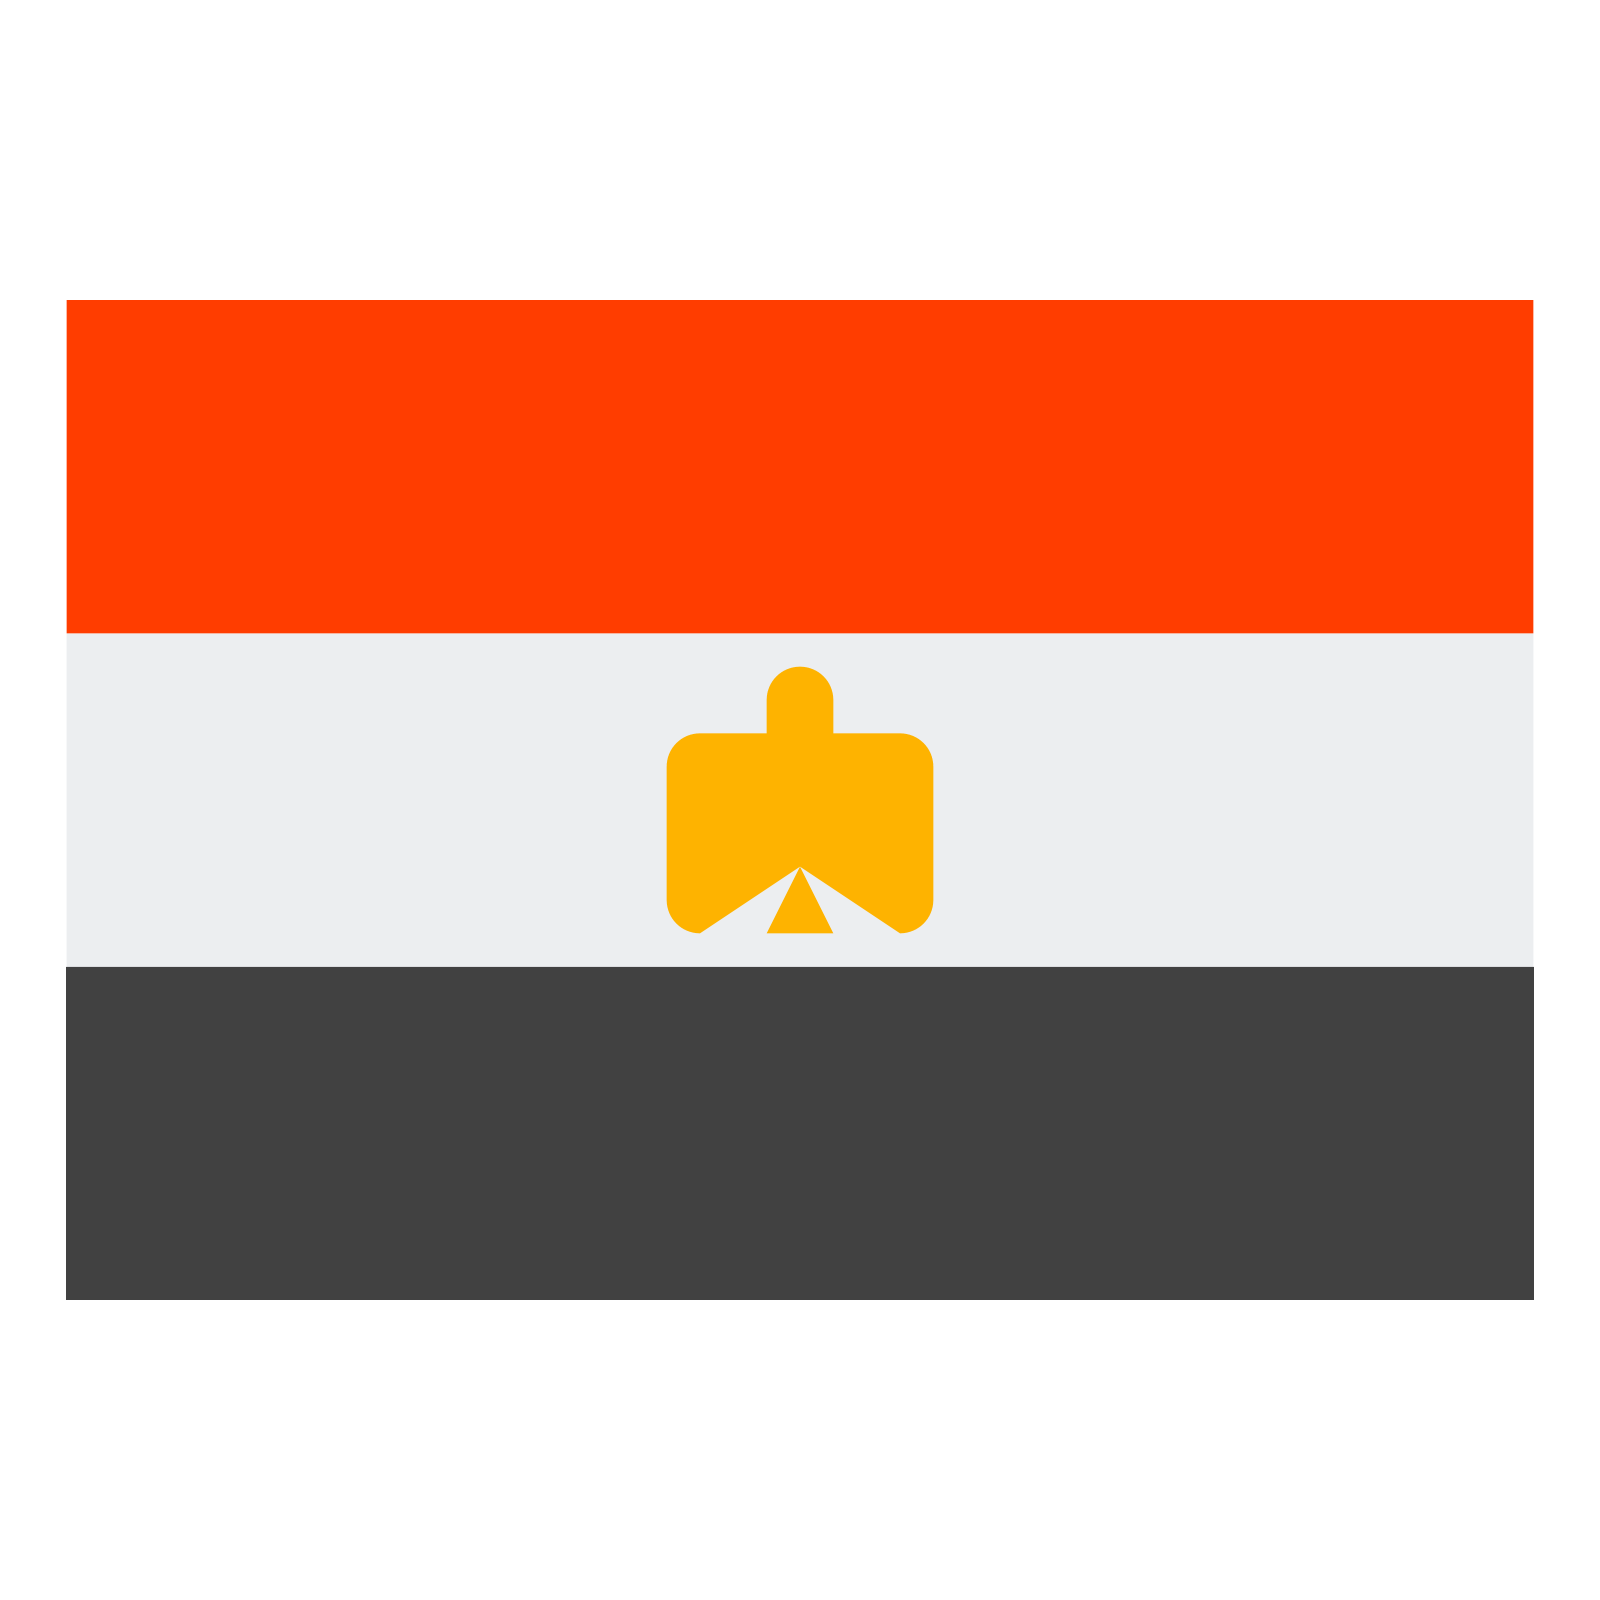 Vector sand pyramid. Free egypt icon download